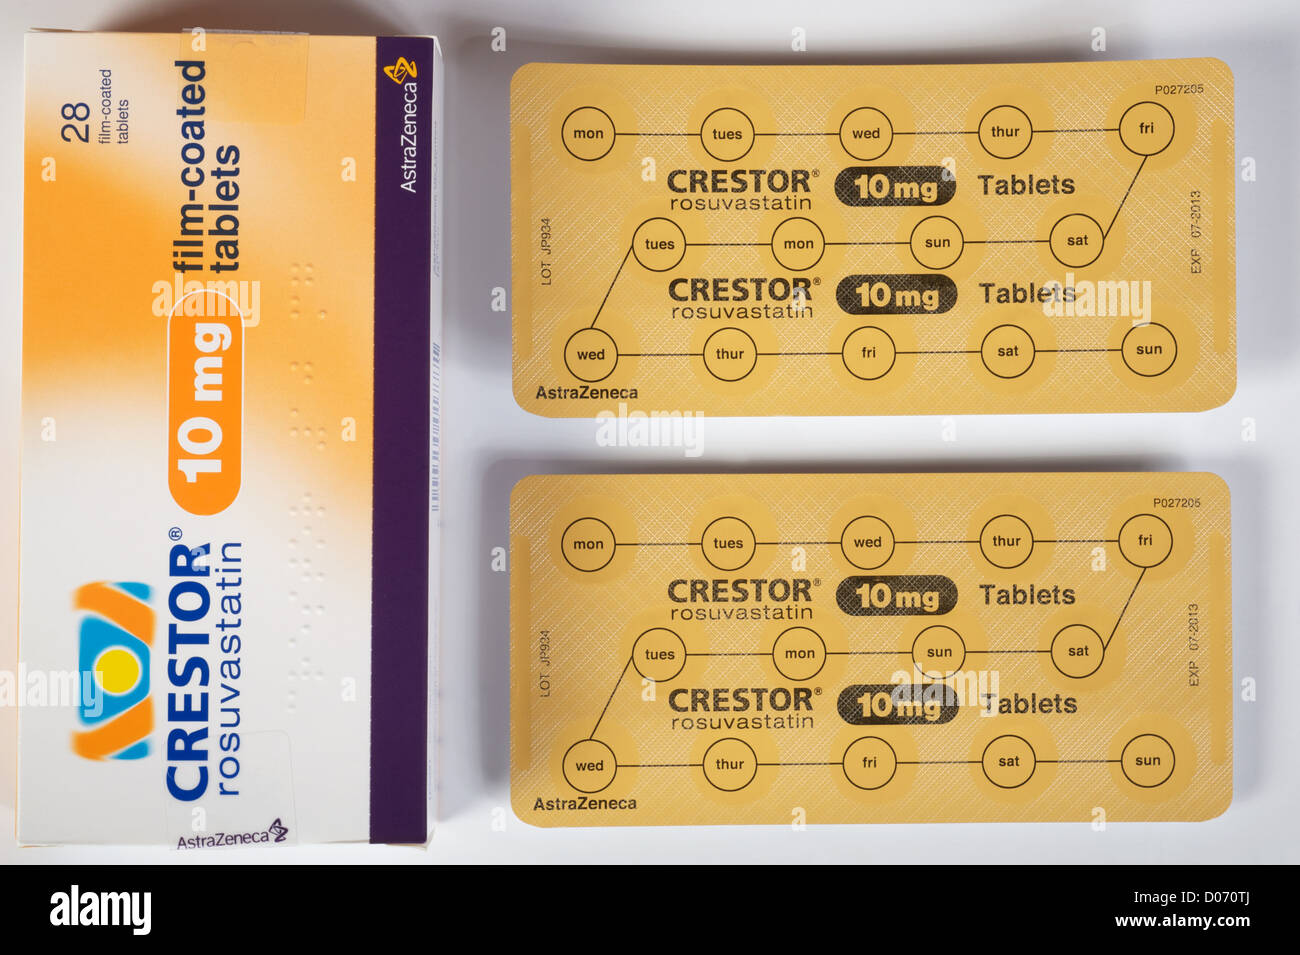 Rosuvastatin (marketed by AstraZeneca as Crestor) - Stock Image